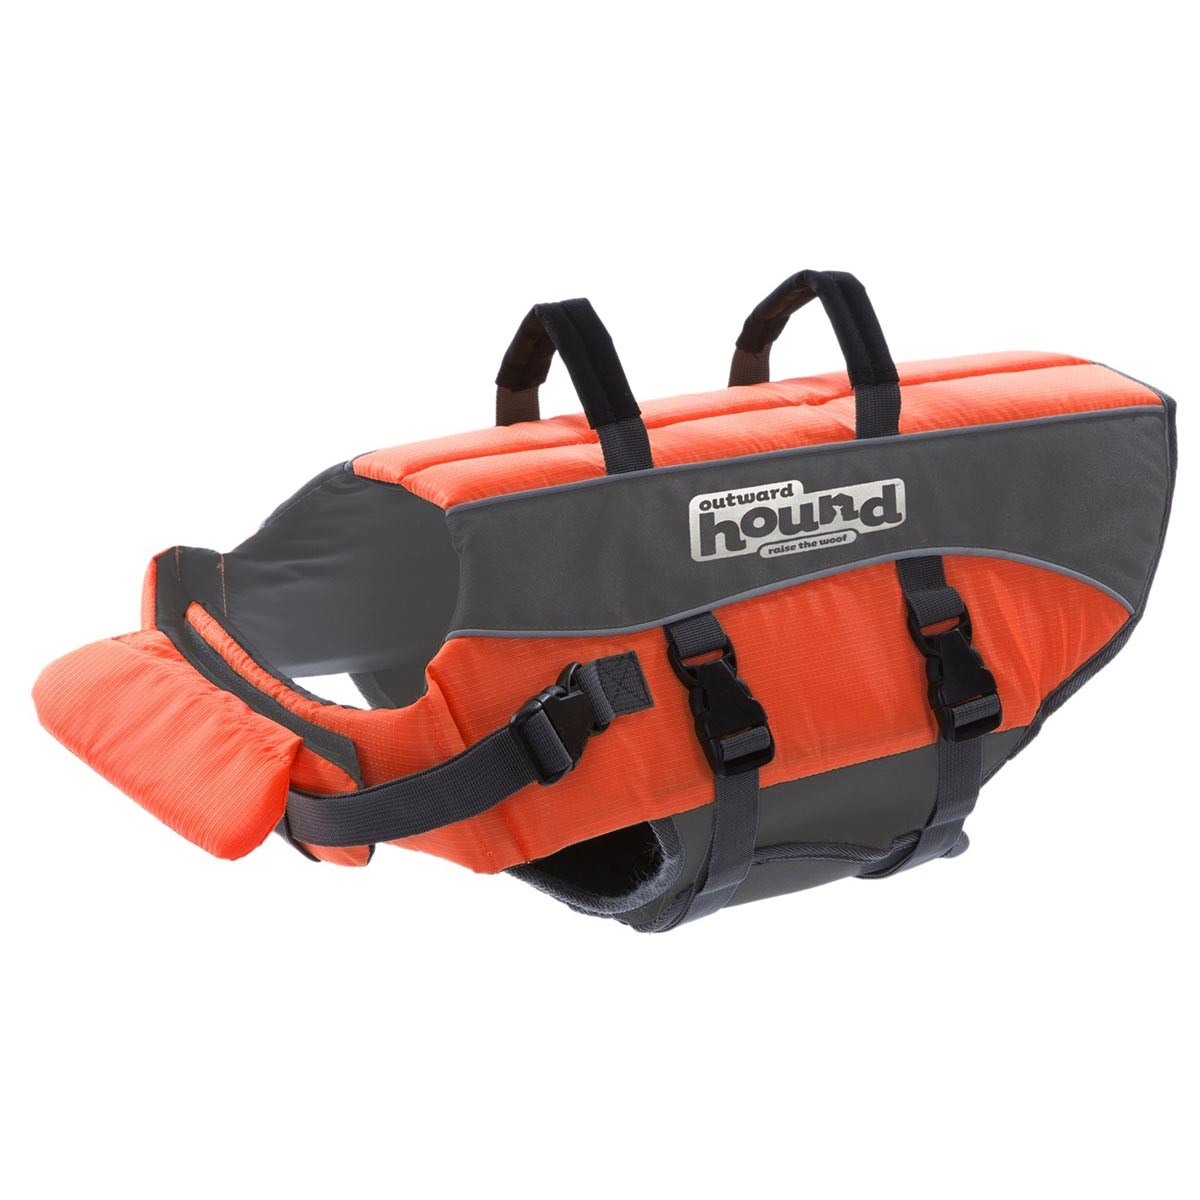 Outward Hound PupSaver Ripstop Life Jacket, Orange, Small